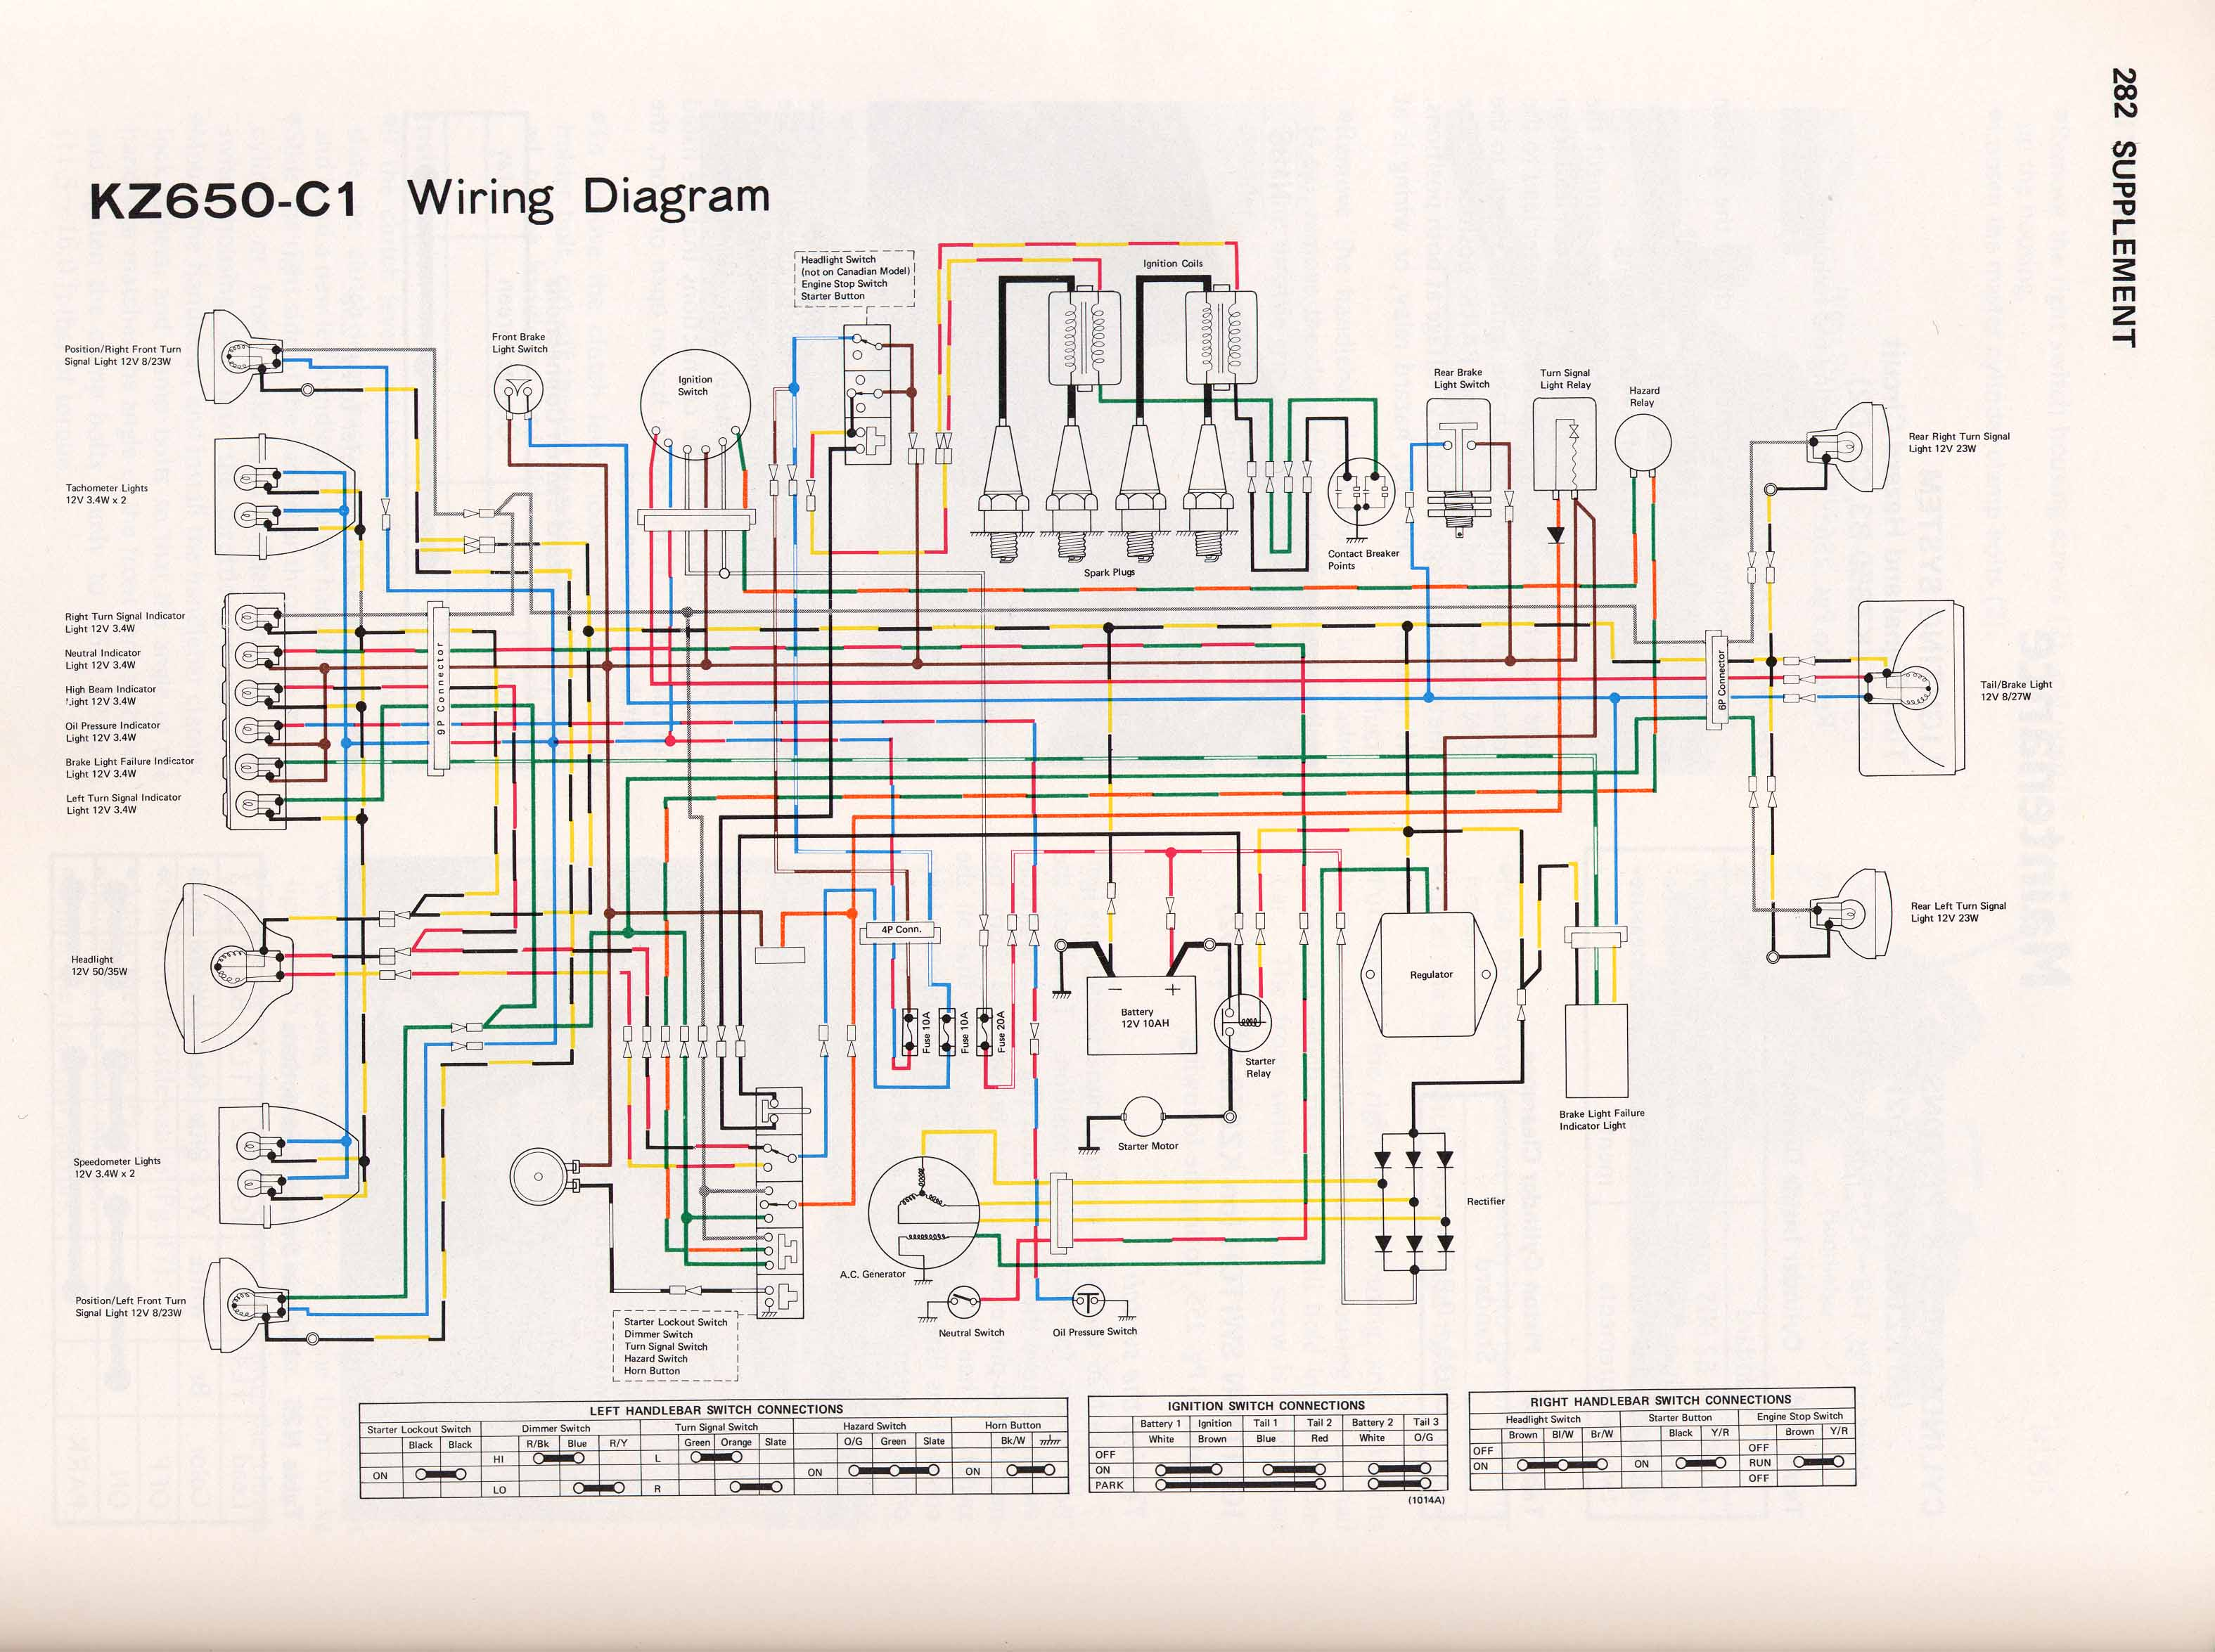 kz650 info wiring diagrams rh diagrams kz650 info Kawasaki Regulator Rectifier Wiring 7 Wire Connections Kawasaki Regulator Rectifier Wiring 7 Wire Connections